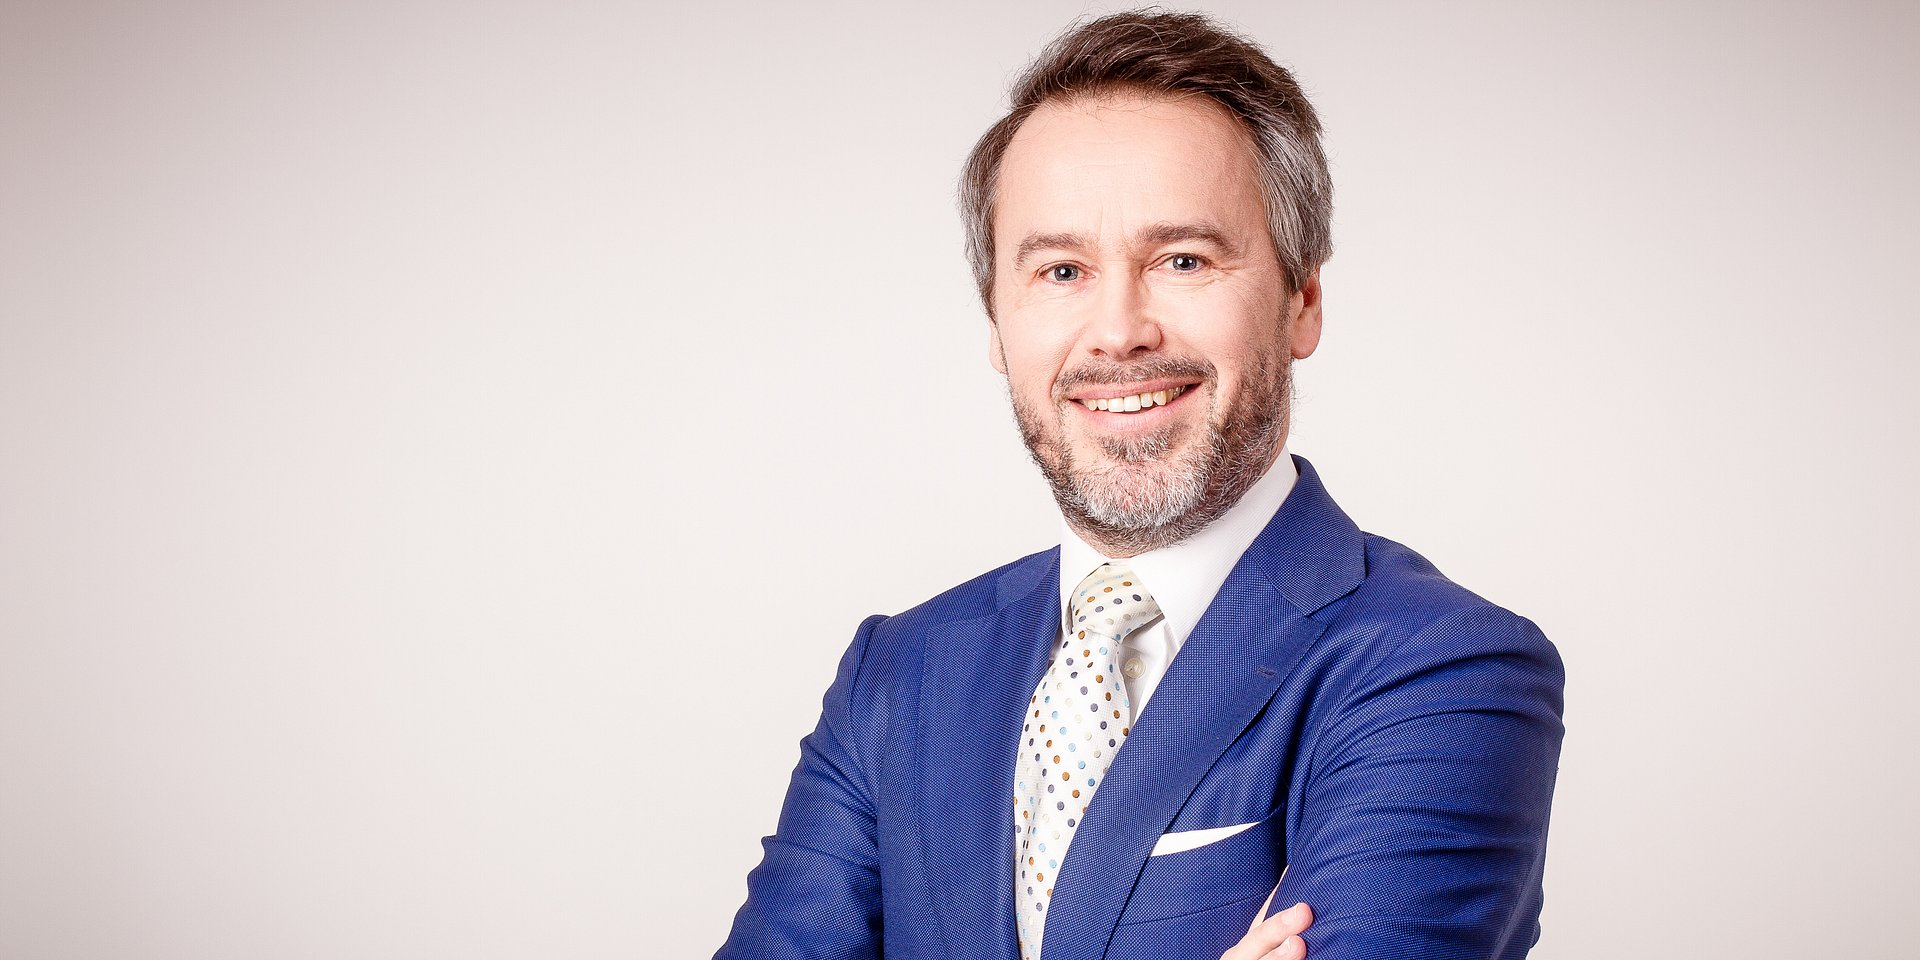 Patrick Delcol takes on new position as Head of Pan-European Retail